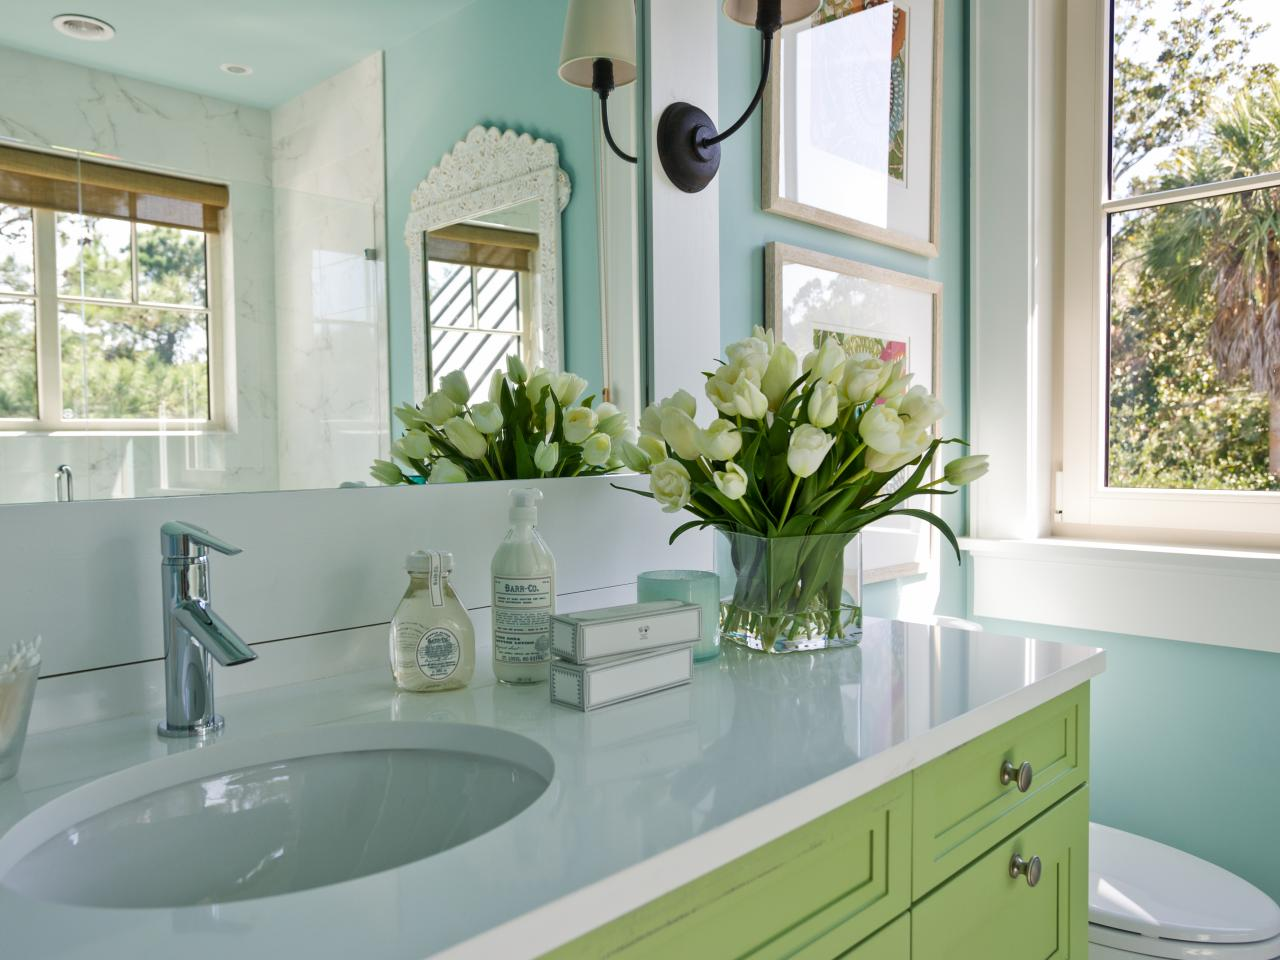 4 Tips For Redecorating Your Bathroom - The Fashionable Housewife